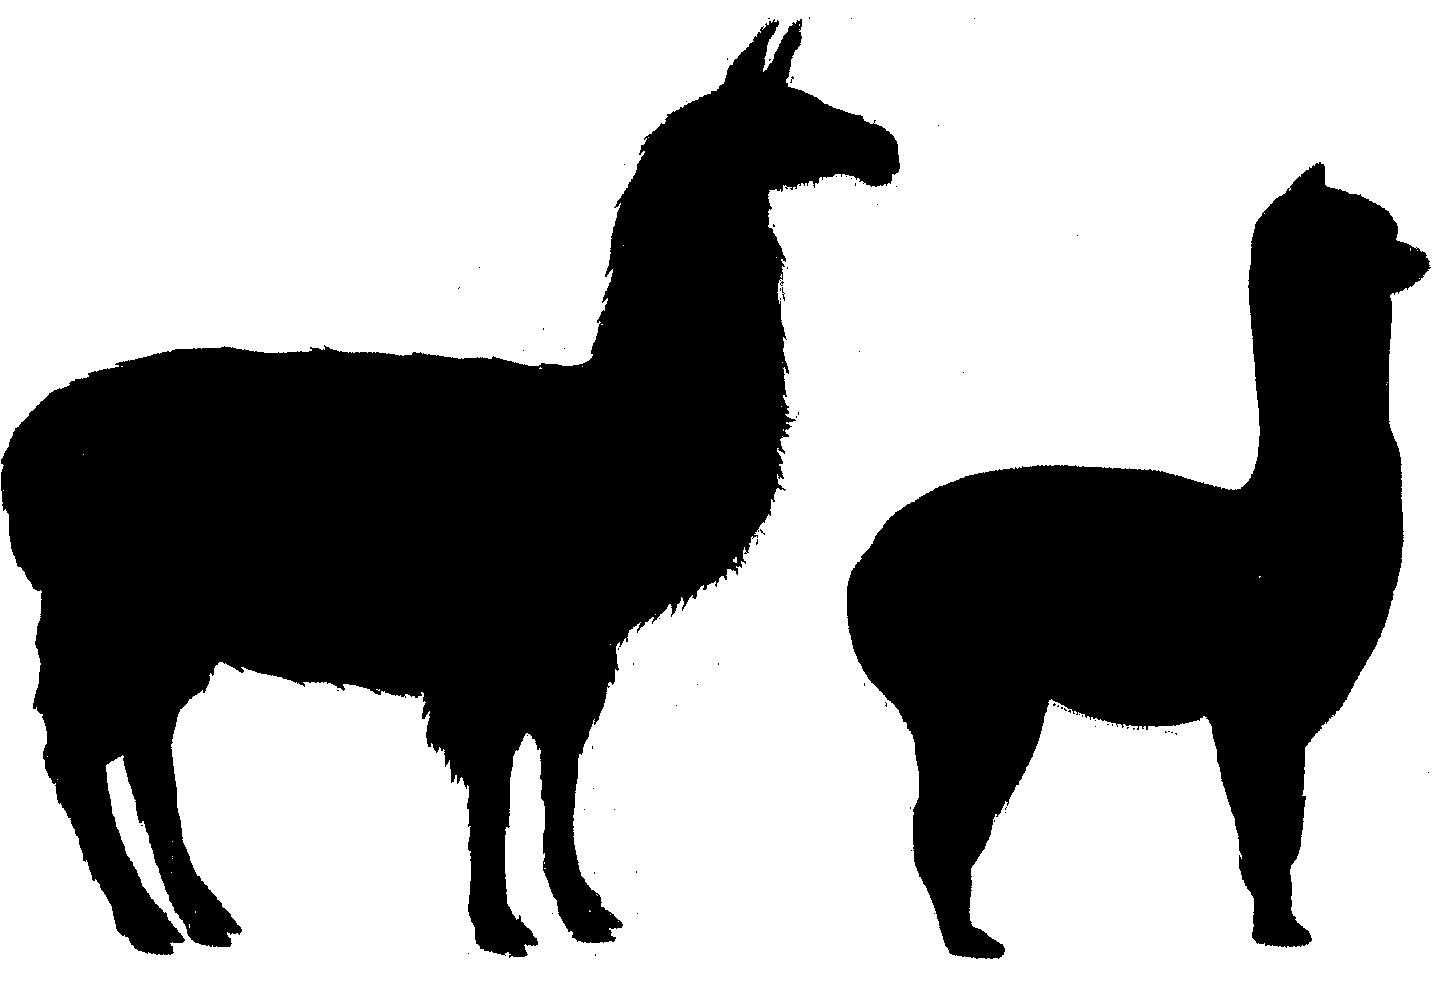 ... -alpacas.co.uk All About Alpacas - ClipArt Best - ClipArt Best